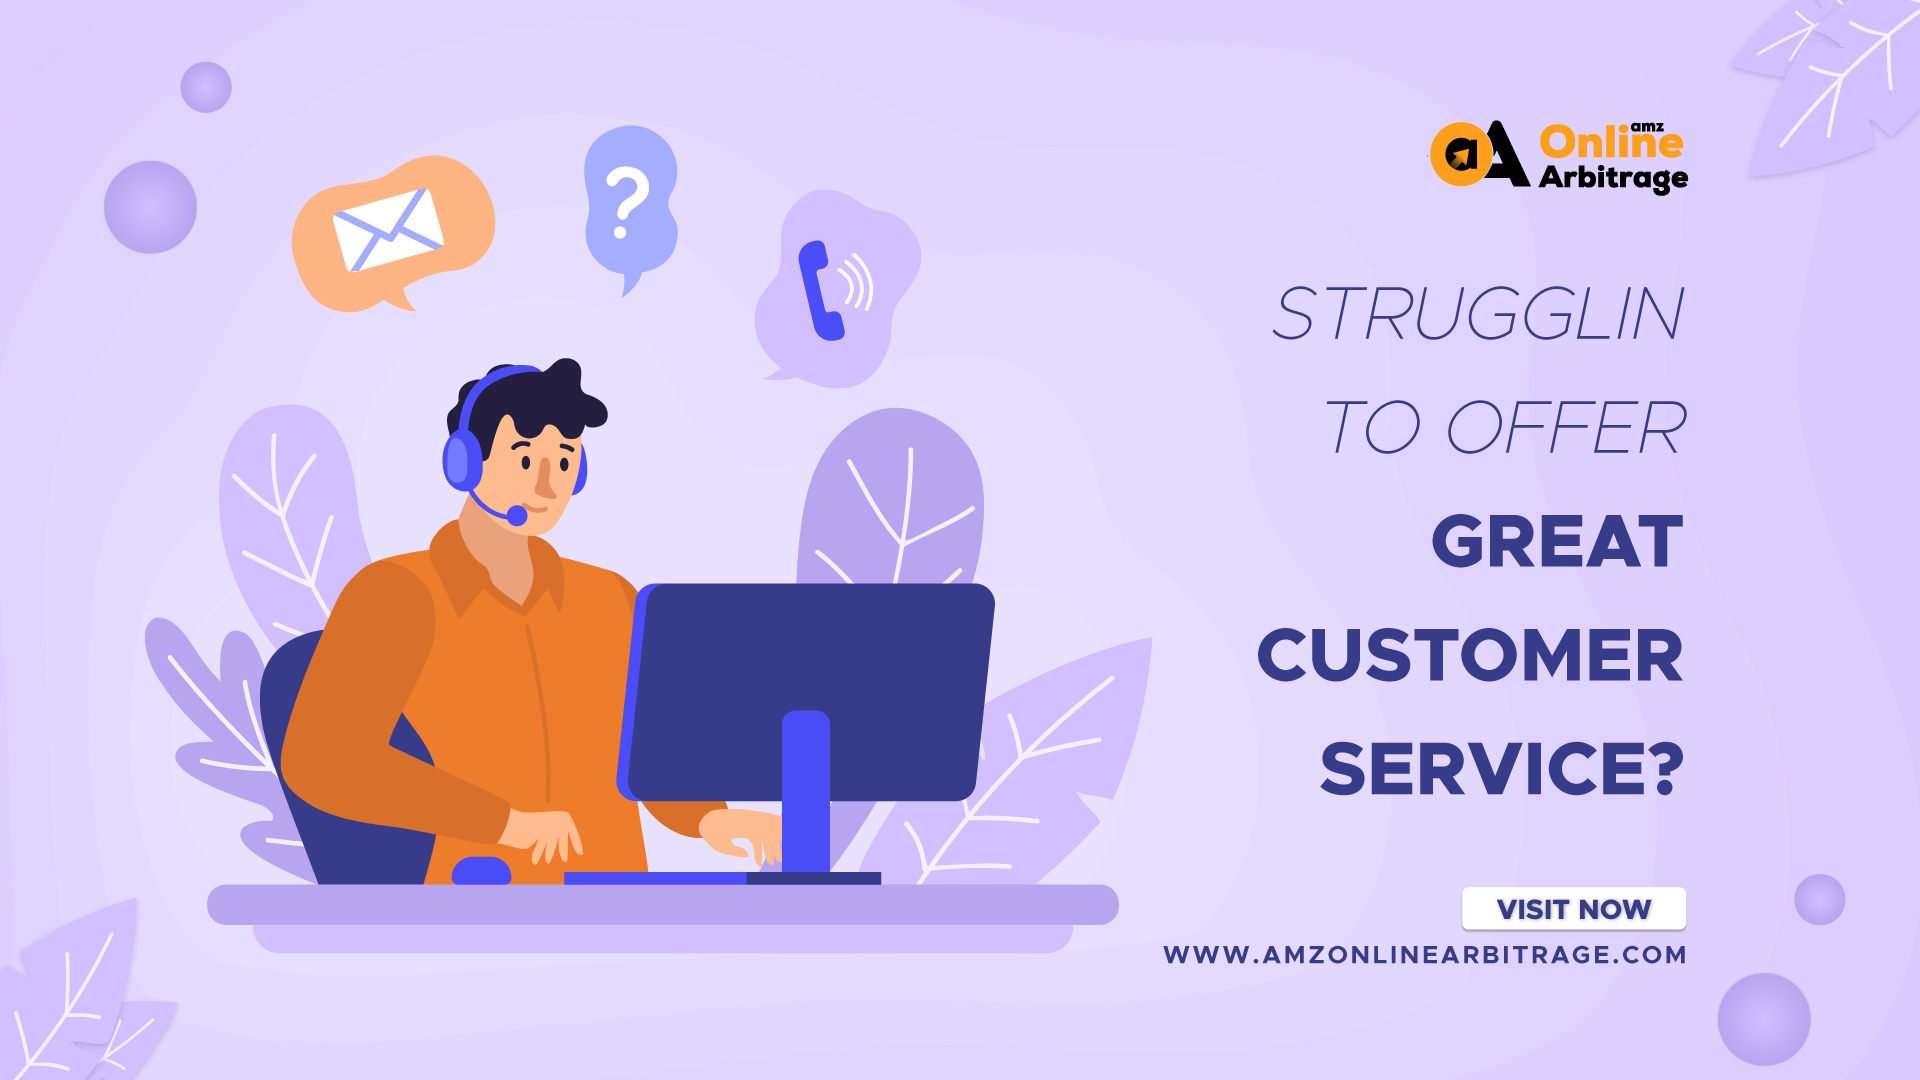 STRUGGLING TO OFFER GREAT CUSTOMER SERVICE?